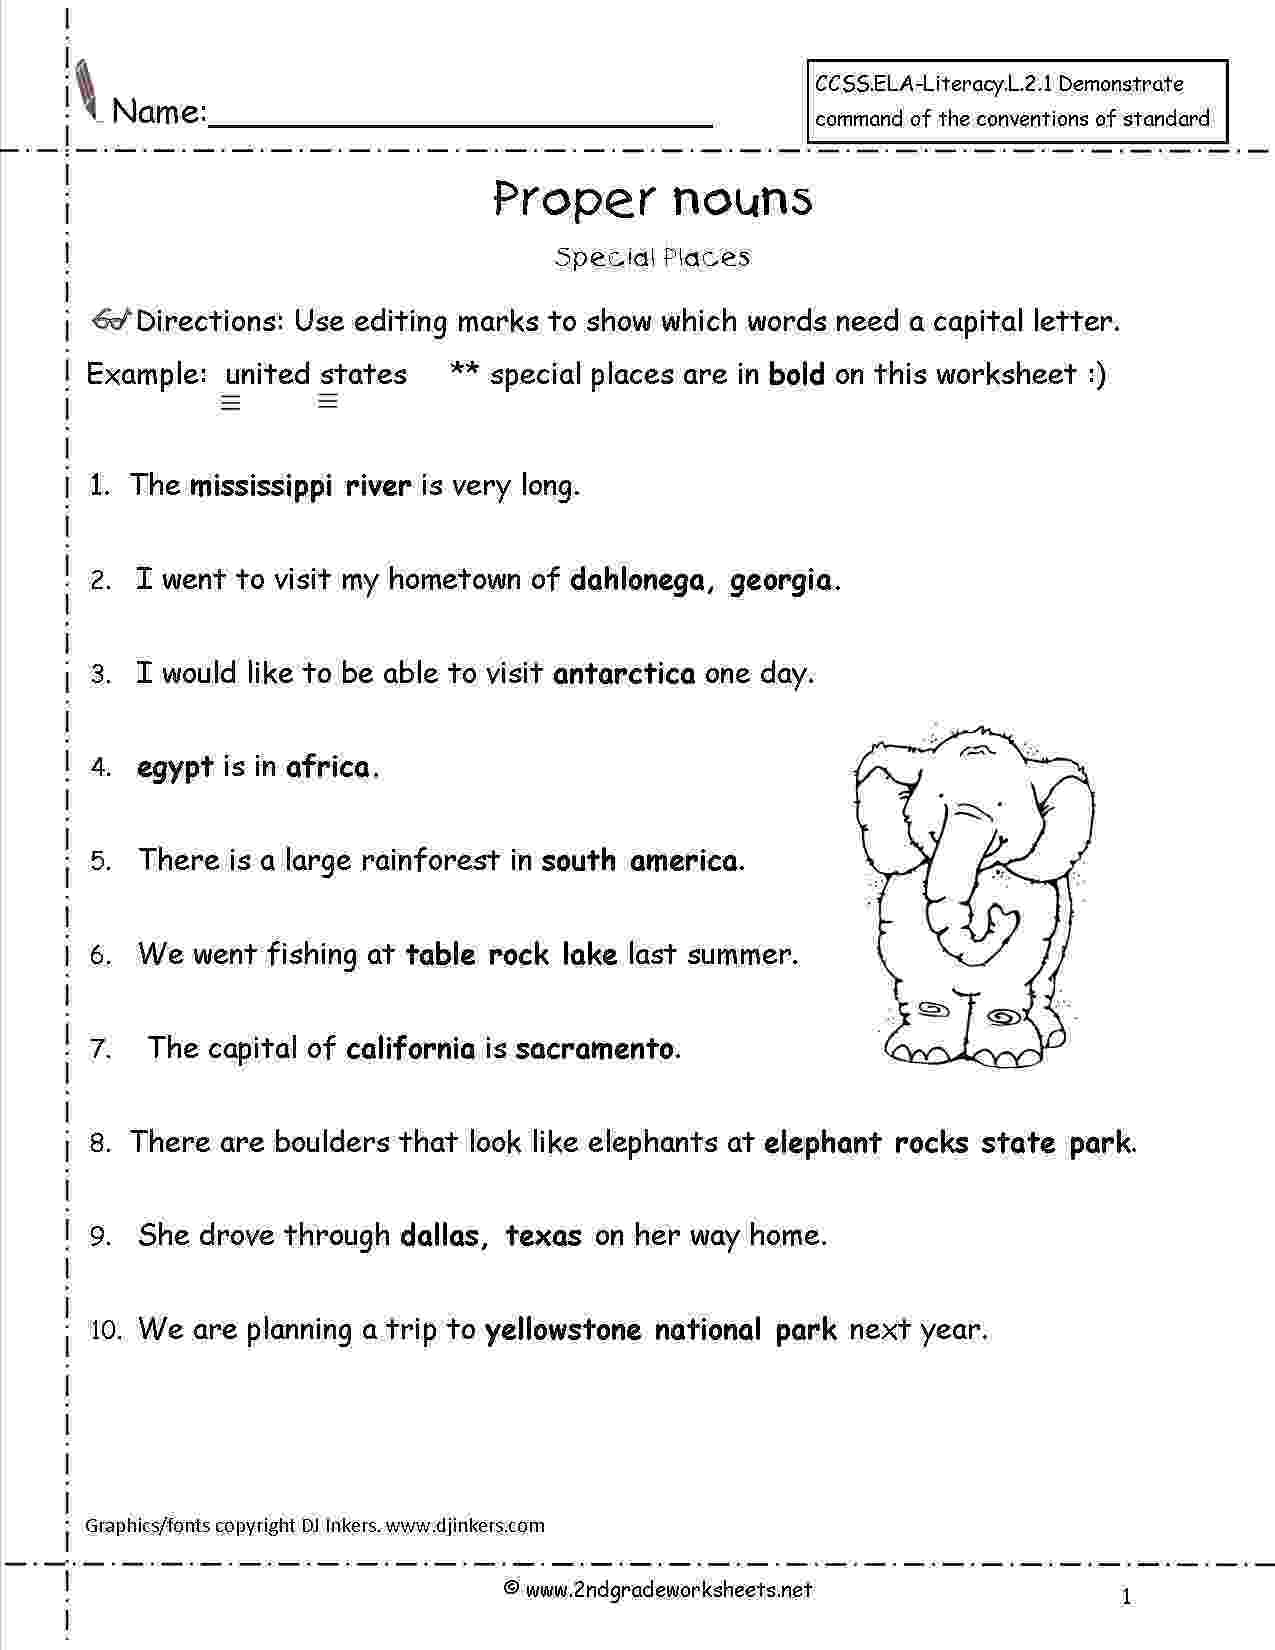 noun worksheets for grade 1 with answers free collective noun worksheet fun with literacy my tpt with grade 1 for noun answers worksheets